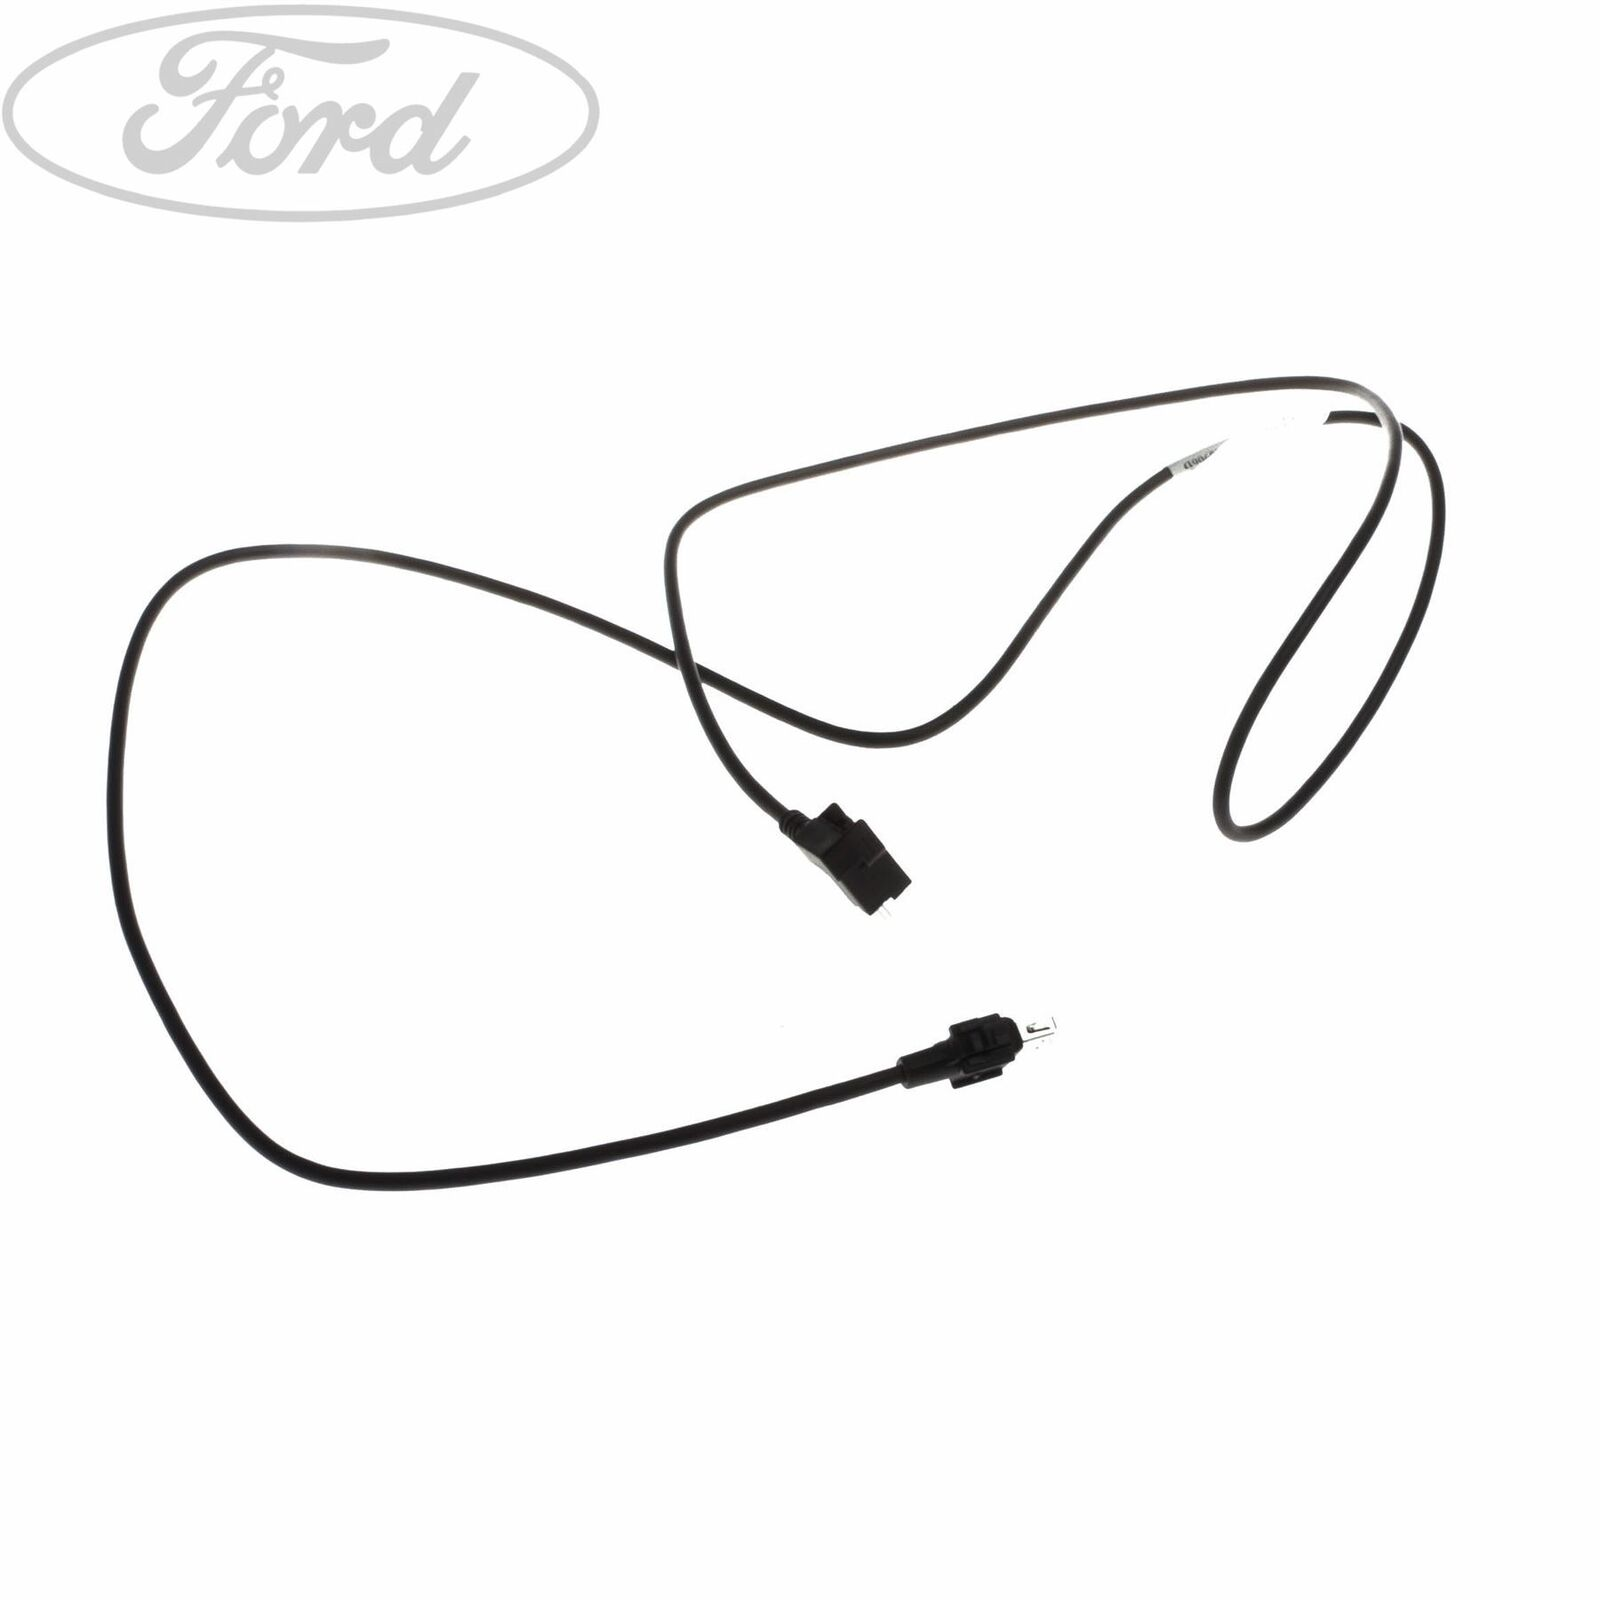 Genuine Ford Fiesta Mk7 Dashboard Usb Wire Cable 1854171 991 Fuse Box Diagram 1 Of 4free Shipping